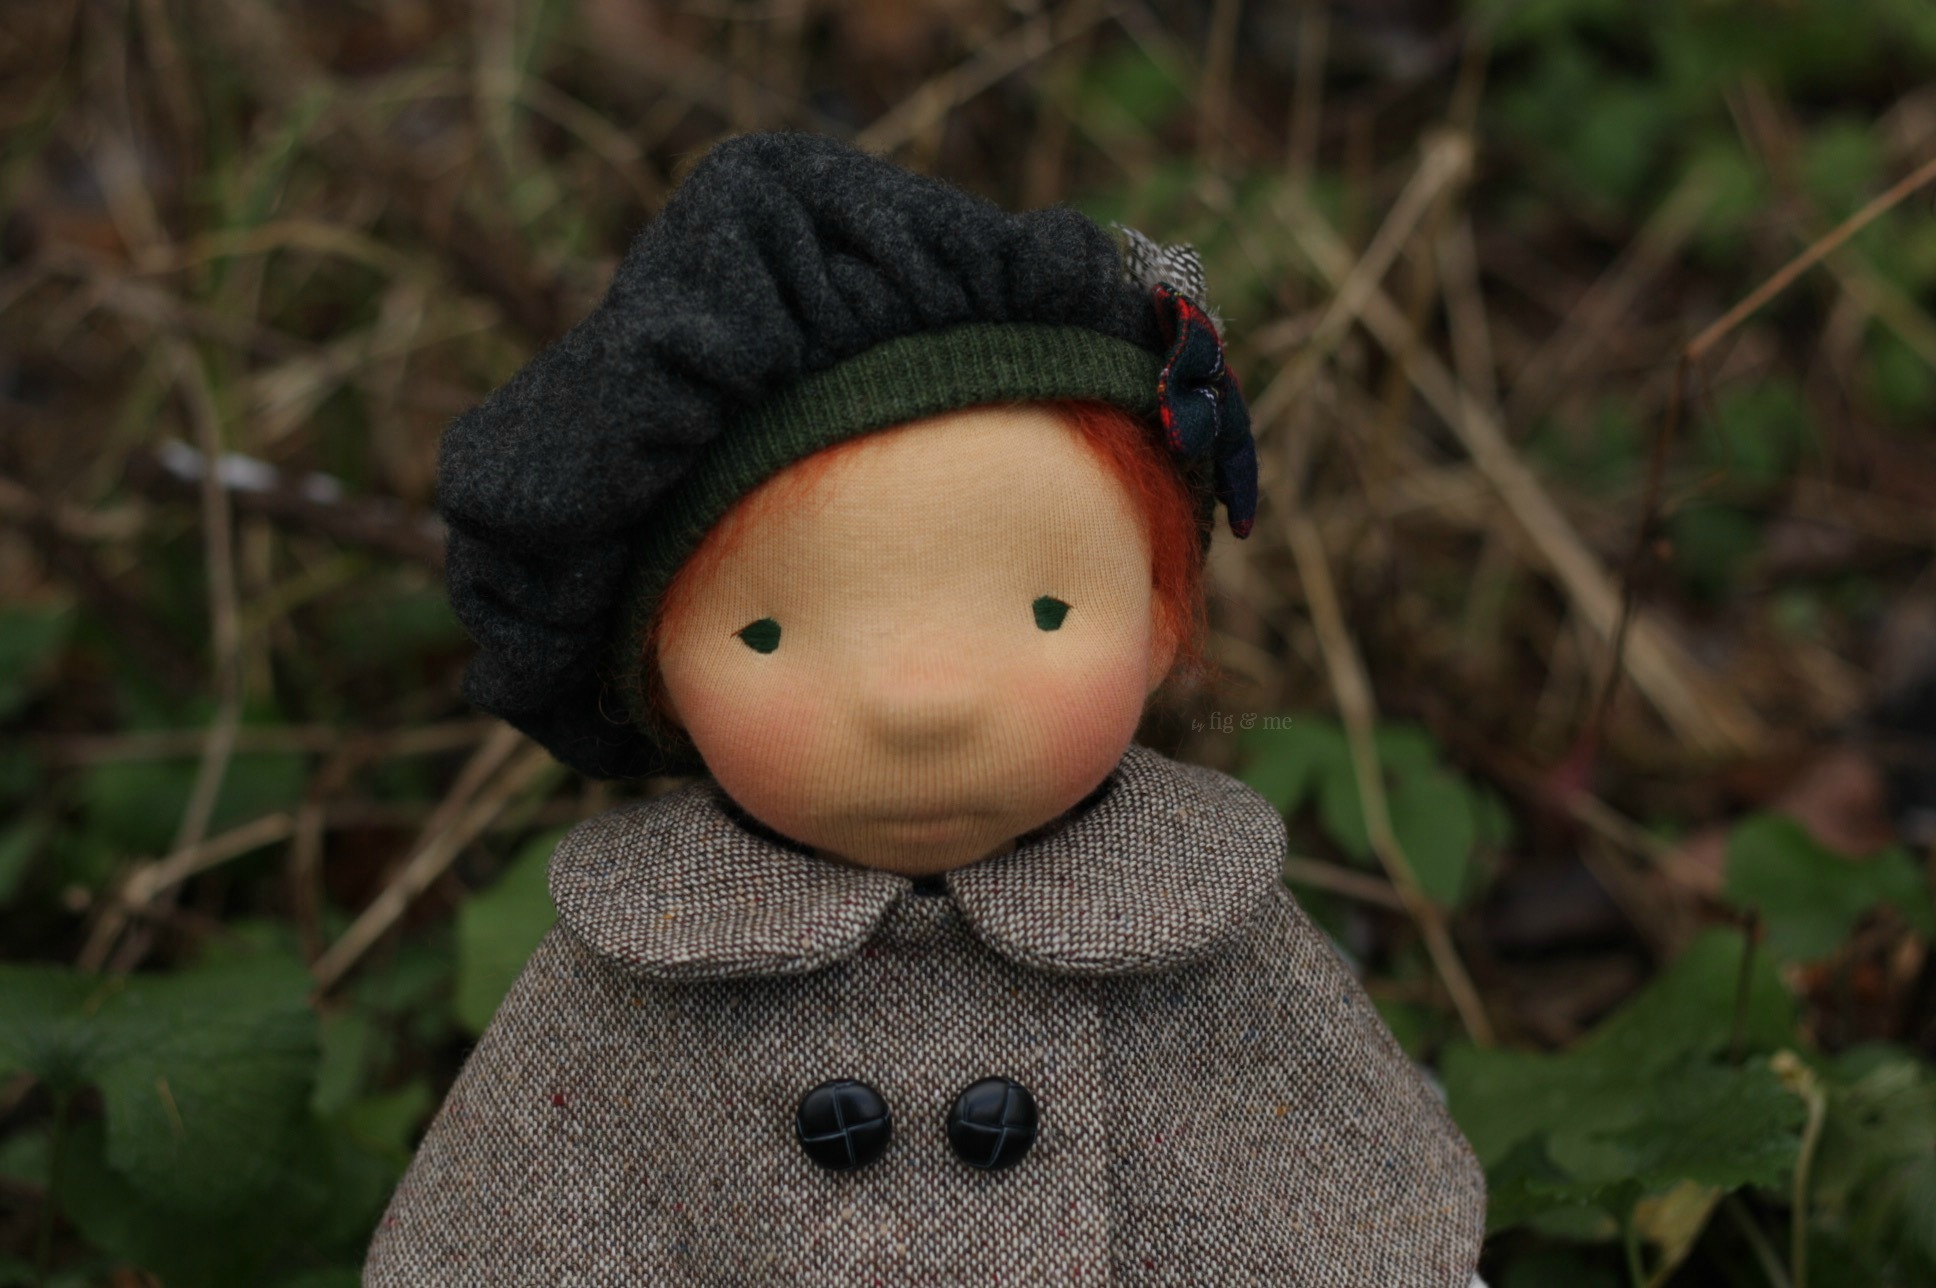 Kilda, a natural fiber art doll by Fig and Me.